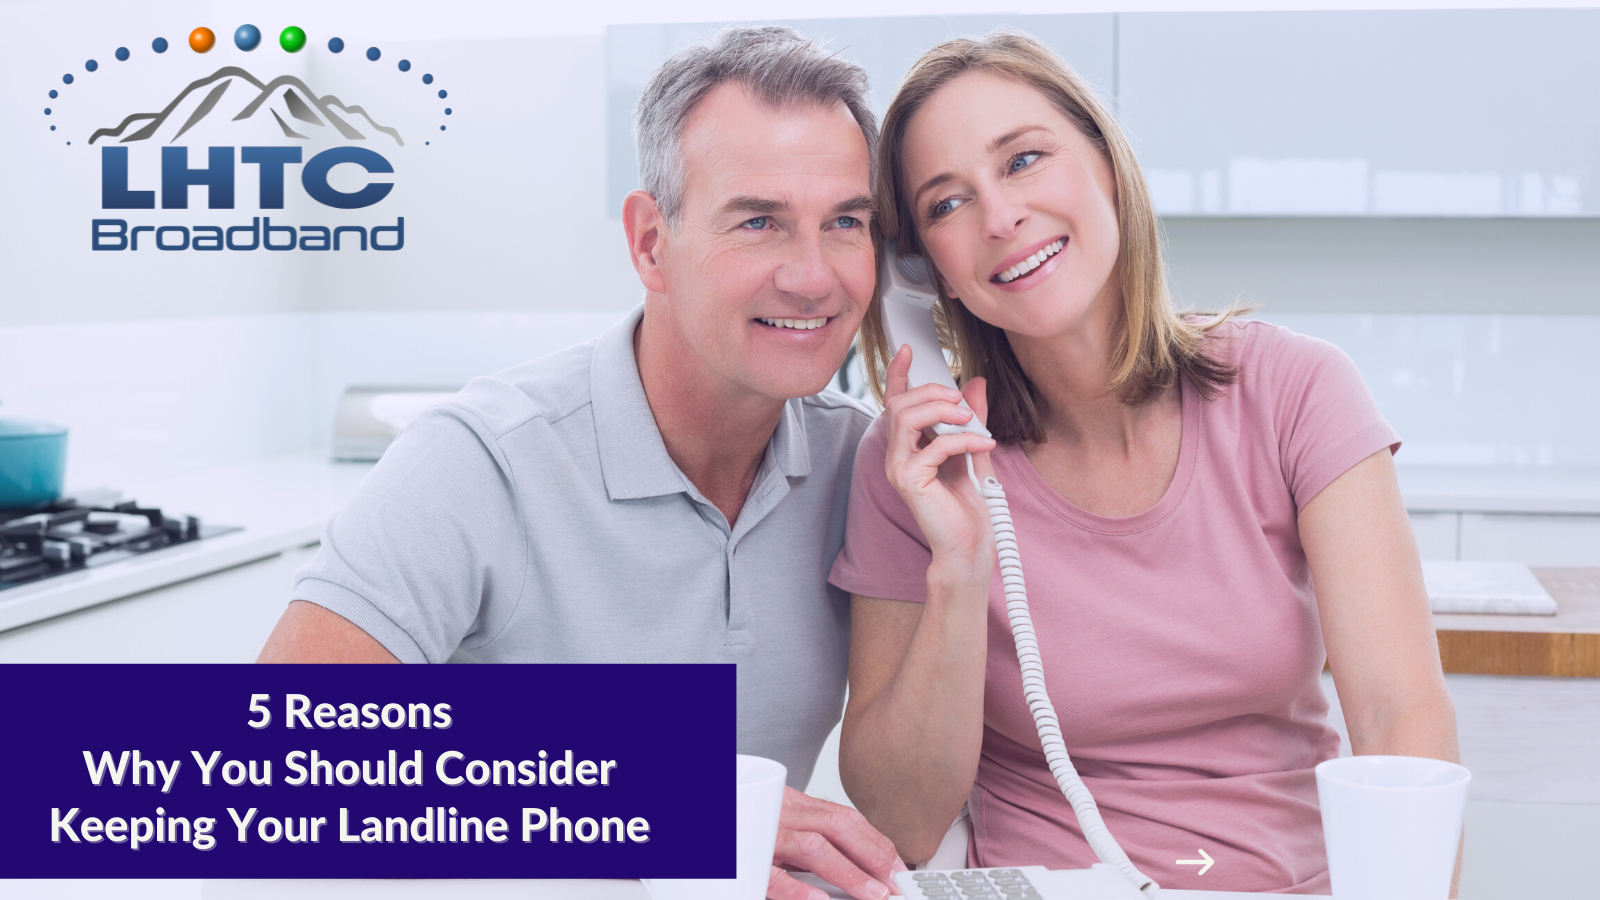 5 Reasons Why You Should Consider Keeping Your Landline Phone